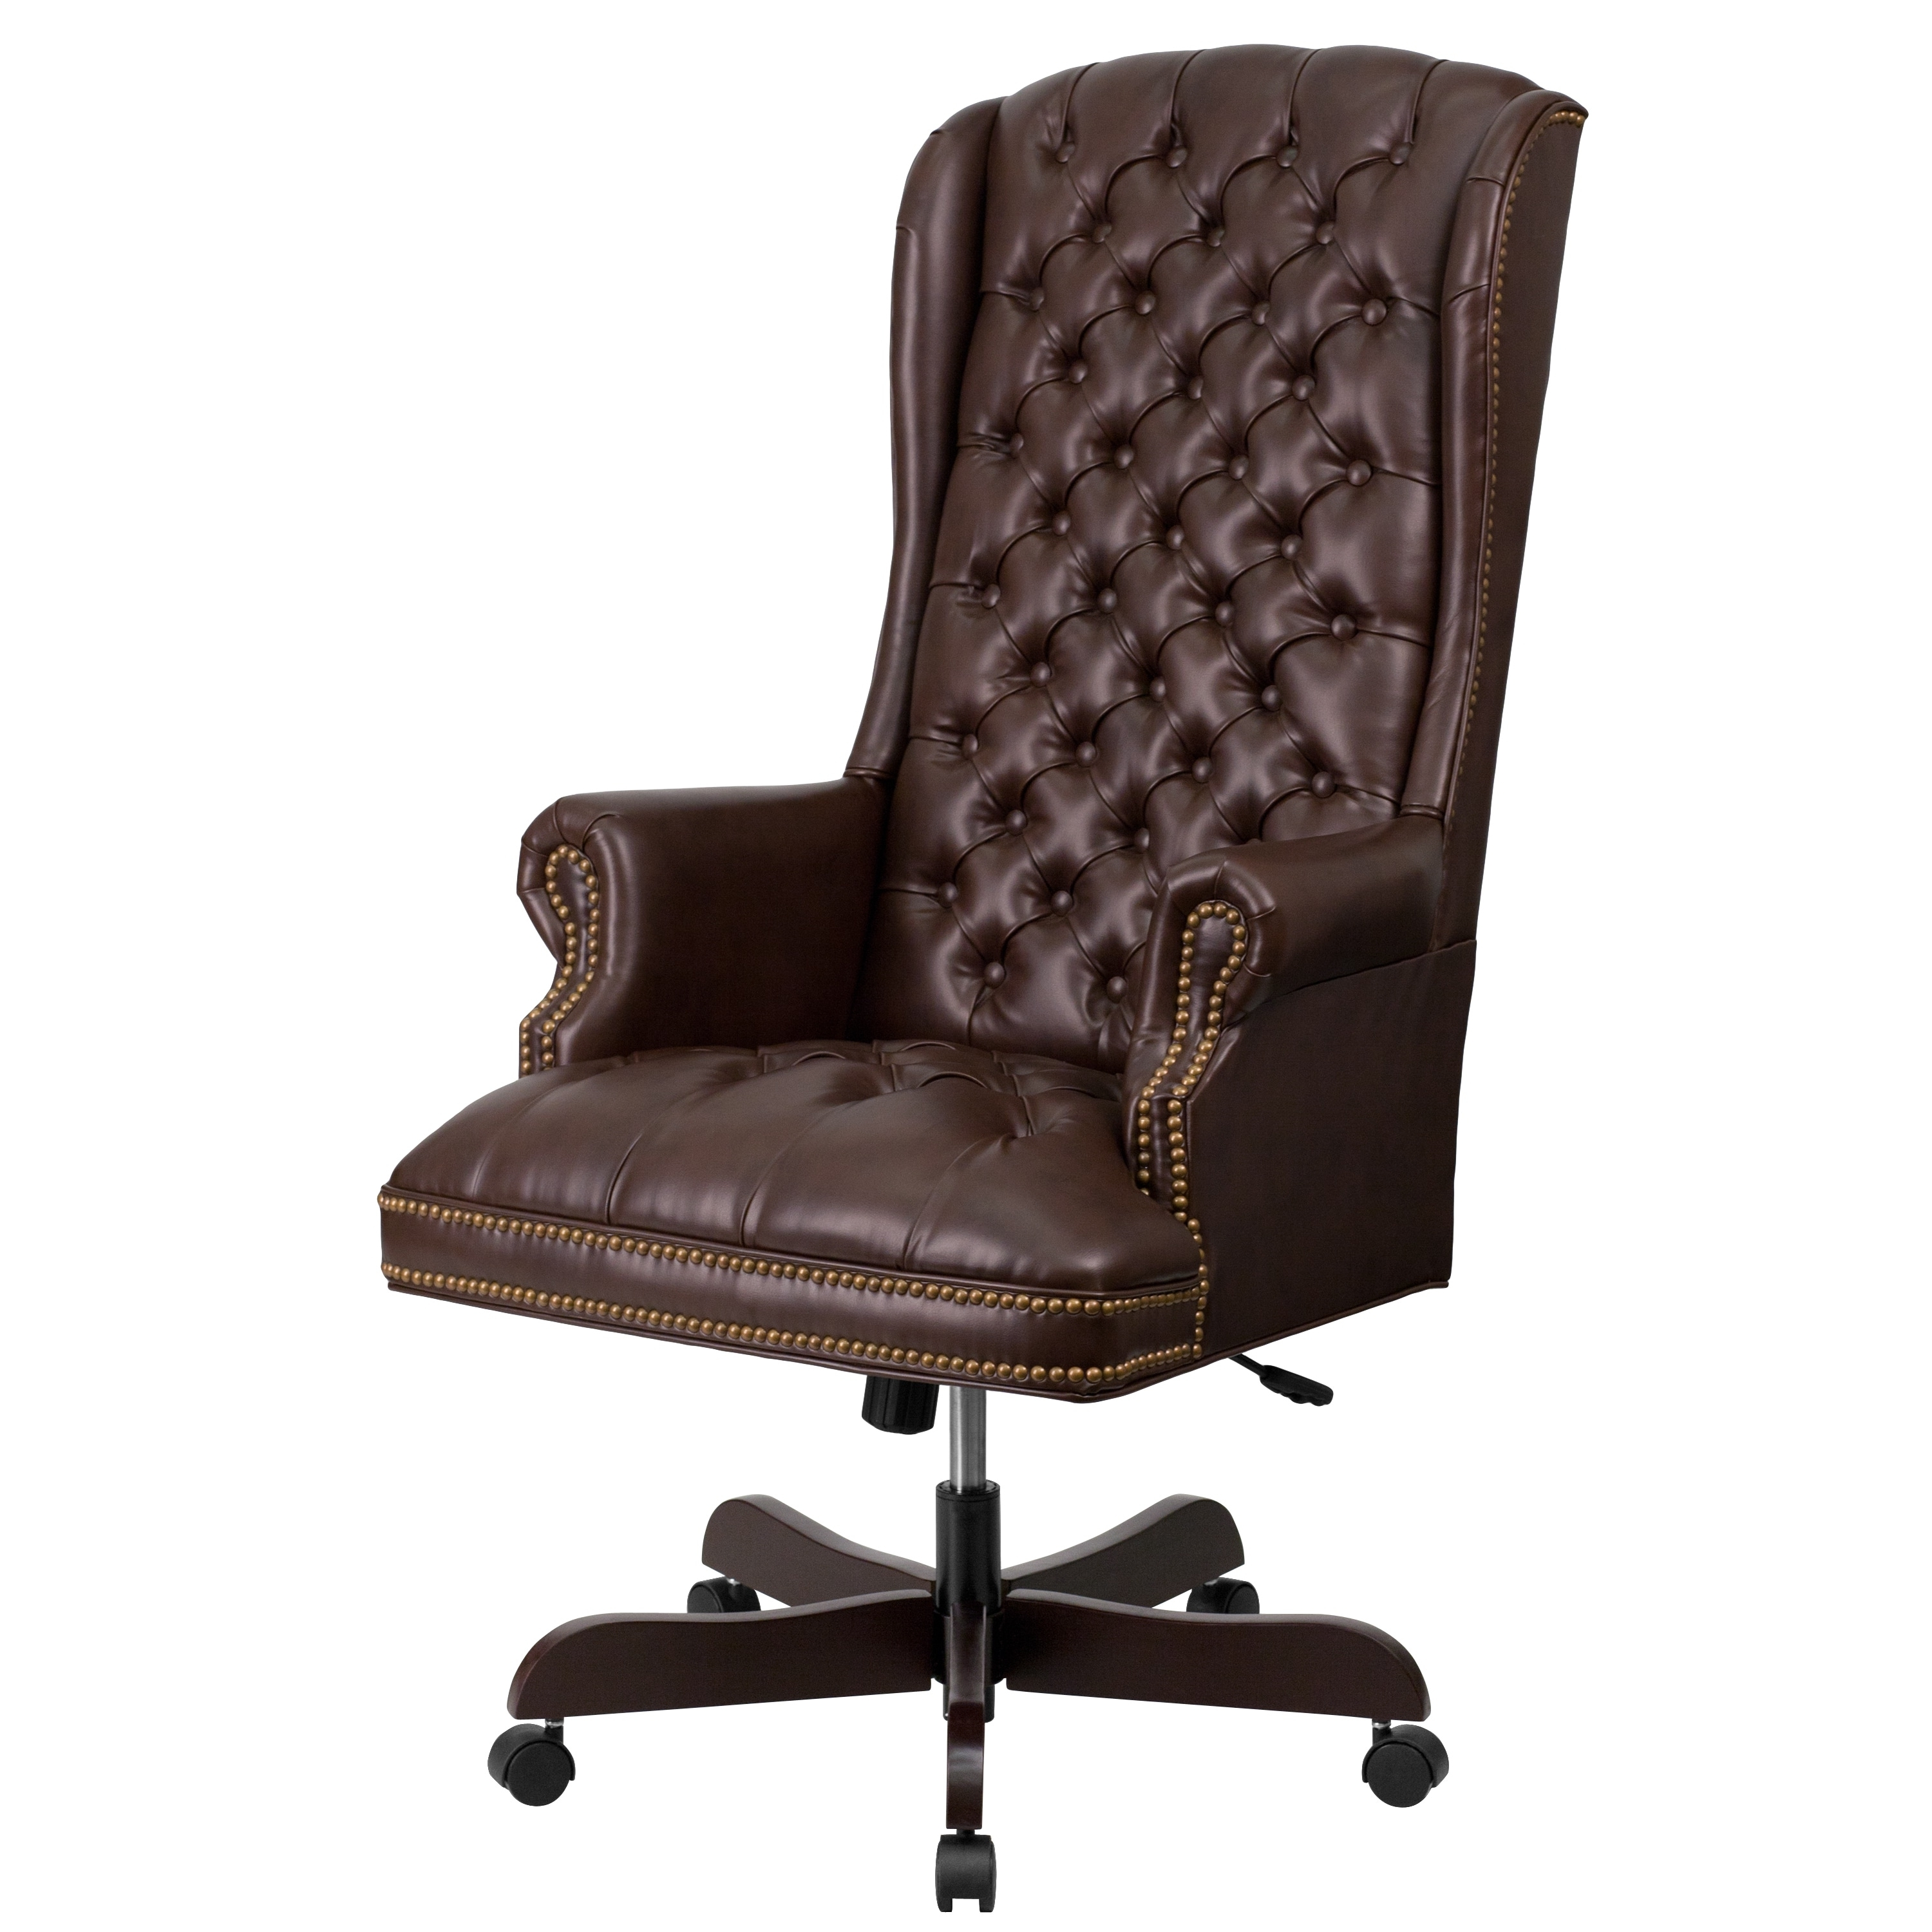 Fashionable Light Beige Microfiber Executive Office Chairs Inside Brown Office & Conference Room Chairs For Less (View 4 of 20)